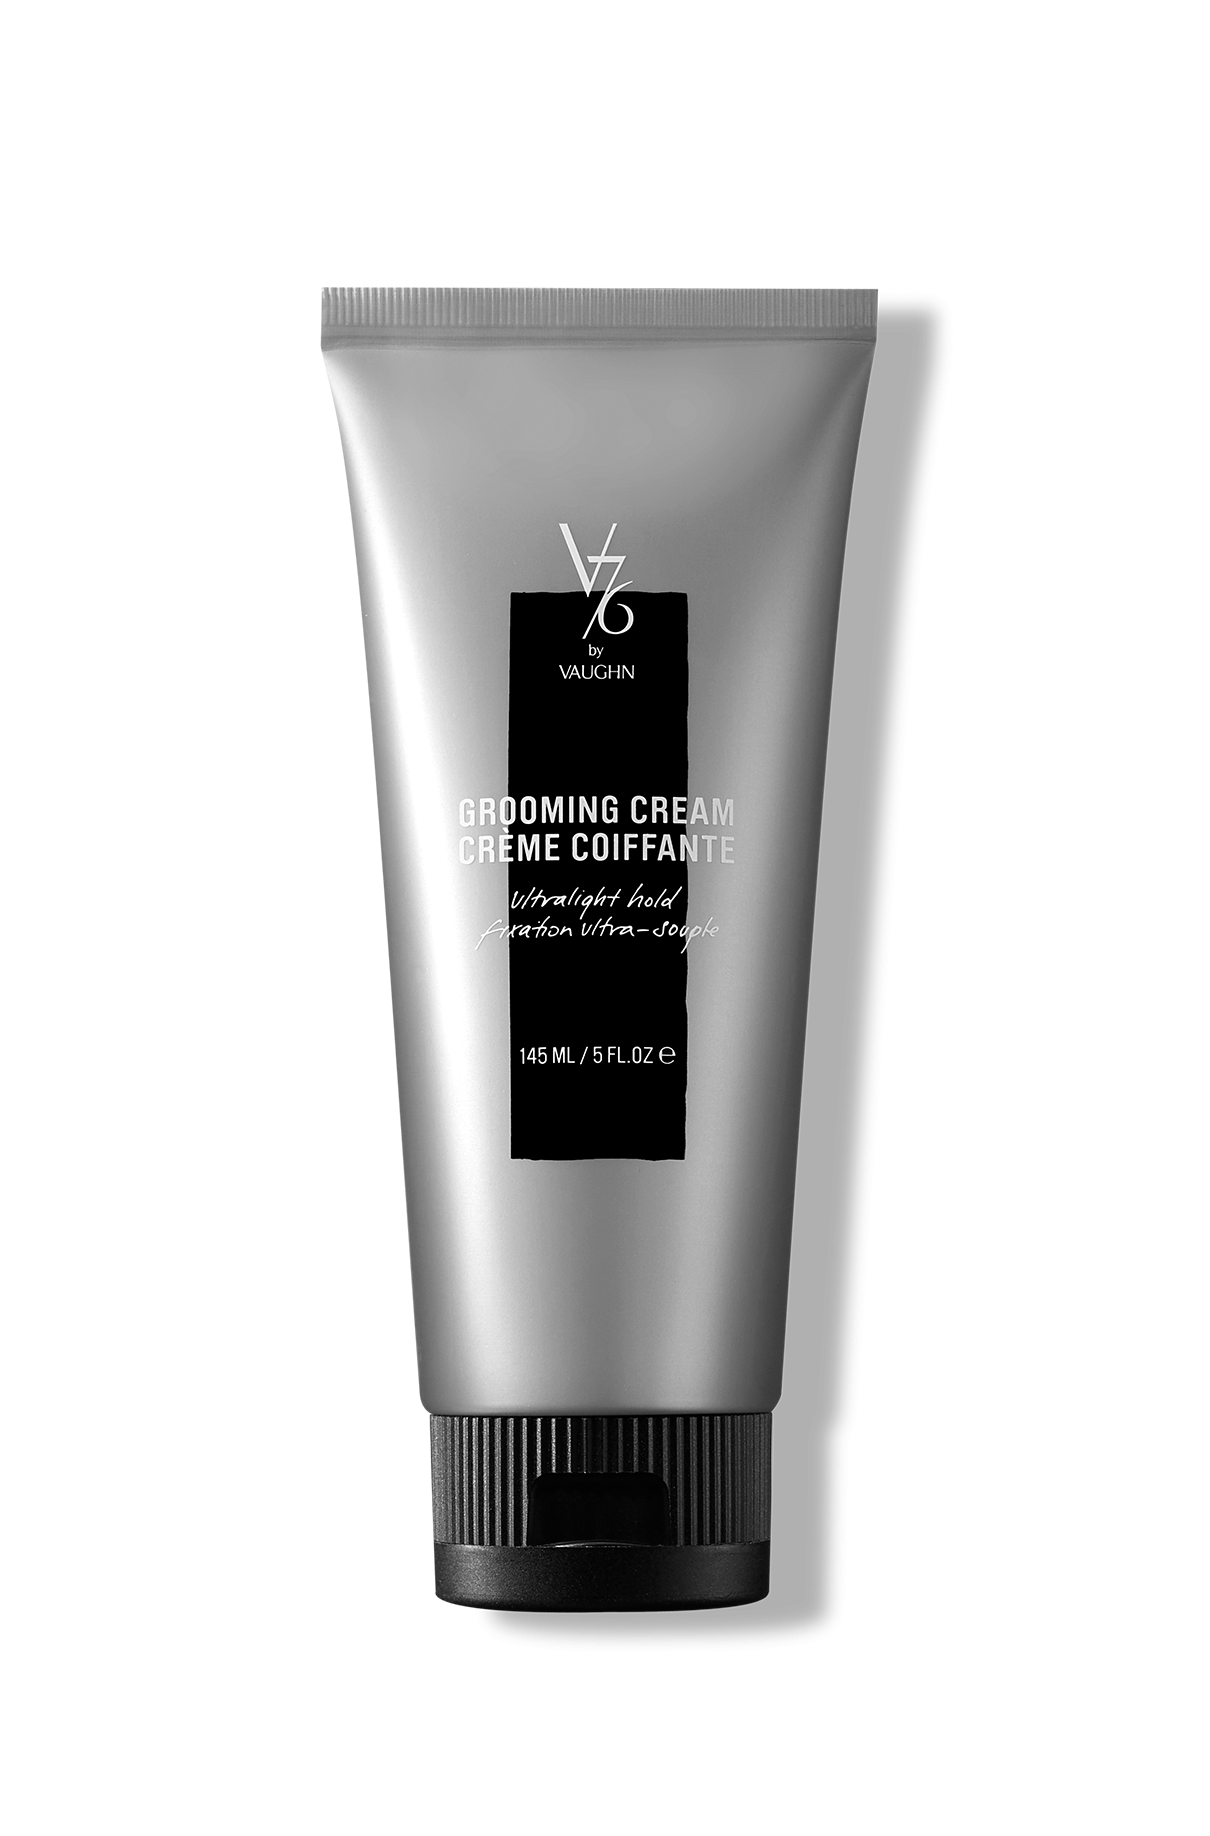 V76 BY VAUGHN Grooming Cream Ultralight Hold -0